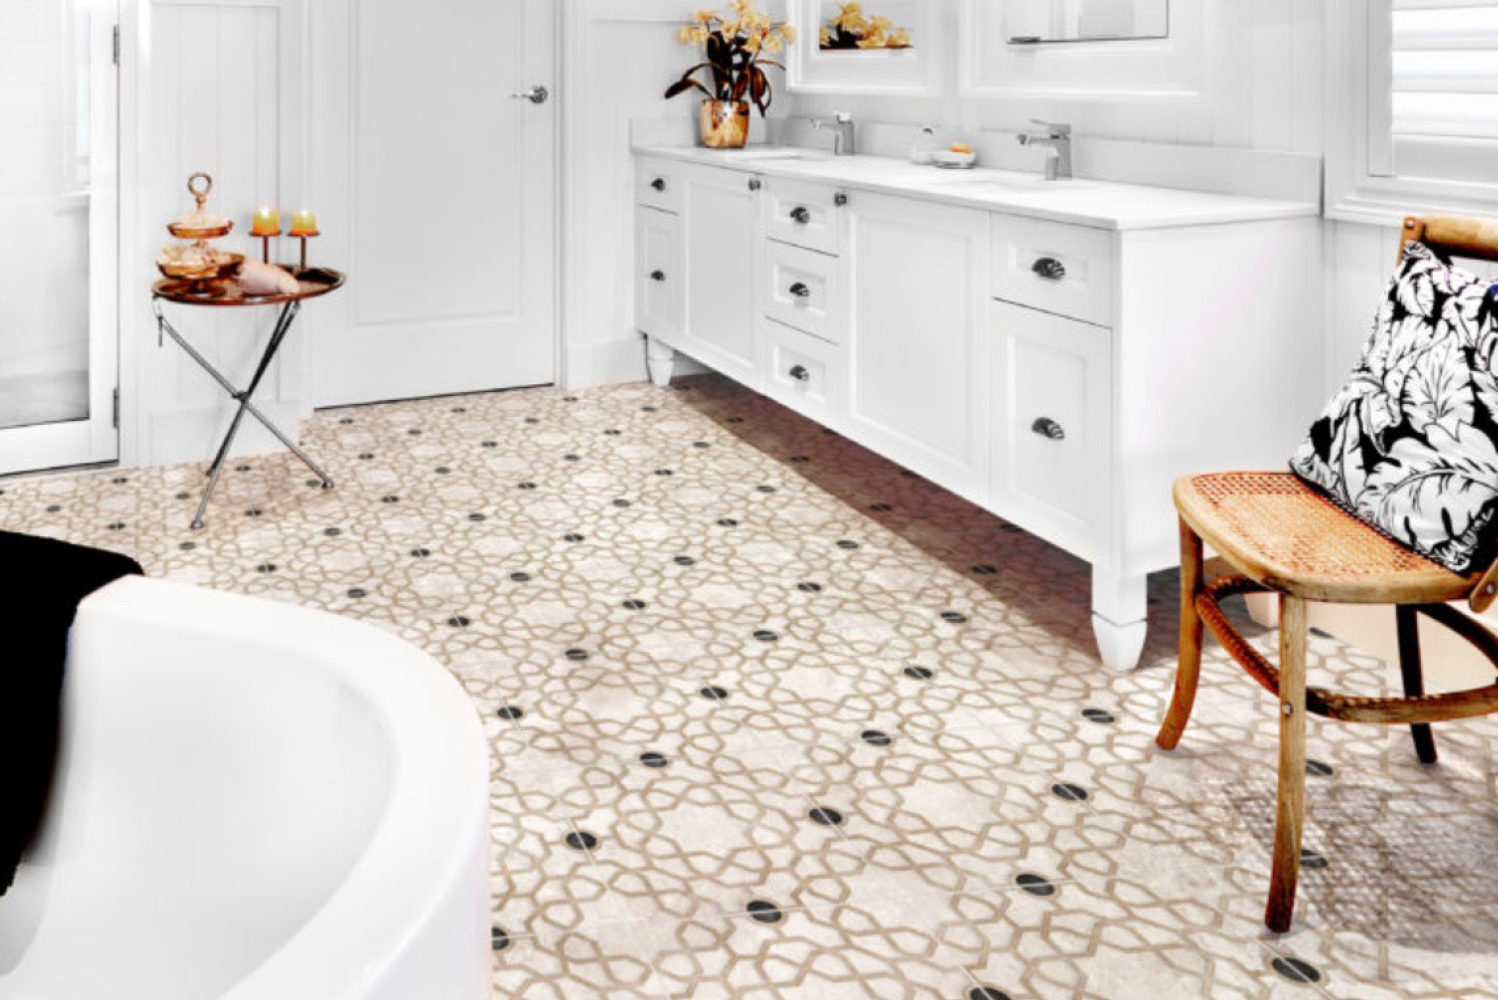 Introducing the Medina tiles from StoneImpressions.